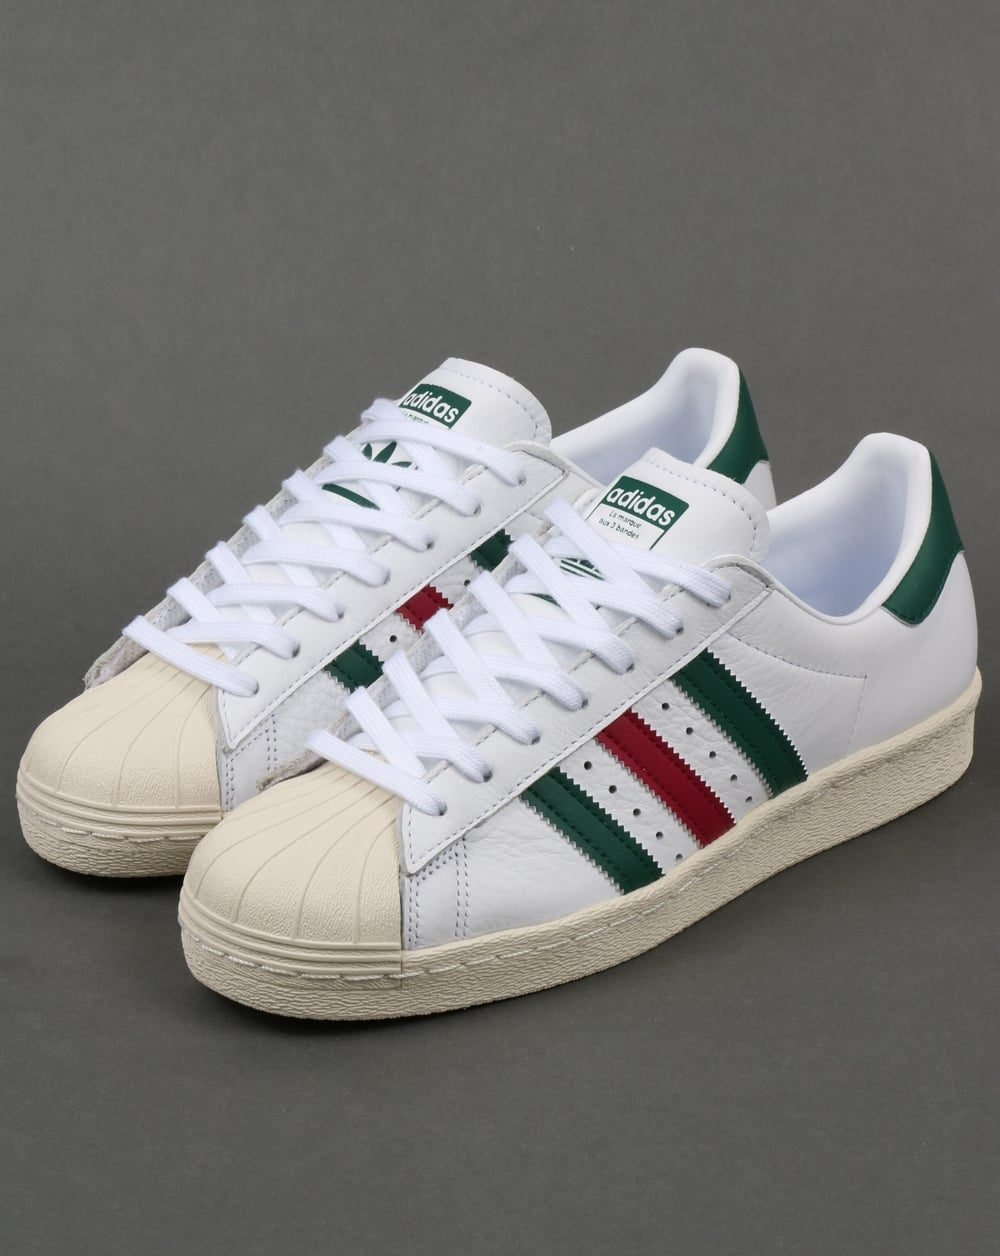 adidas superstar 80s trainers white green ruby shell toe shoe originals. Black Bedroom Furniture Sets. Home Design Ideas